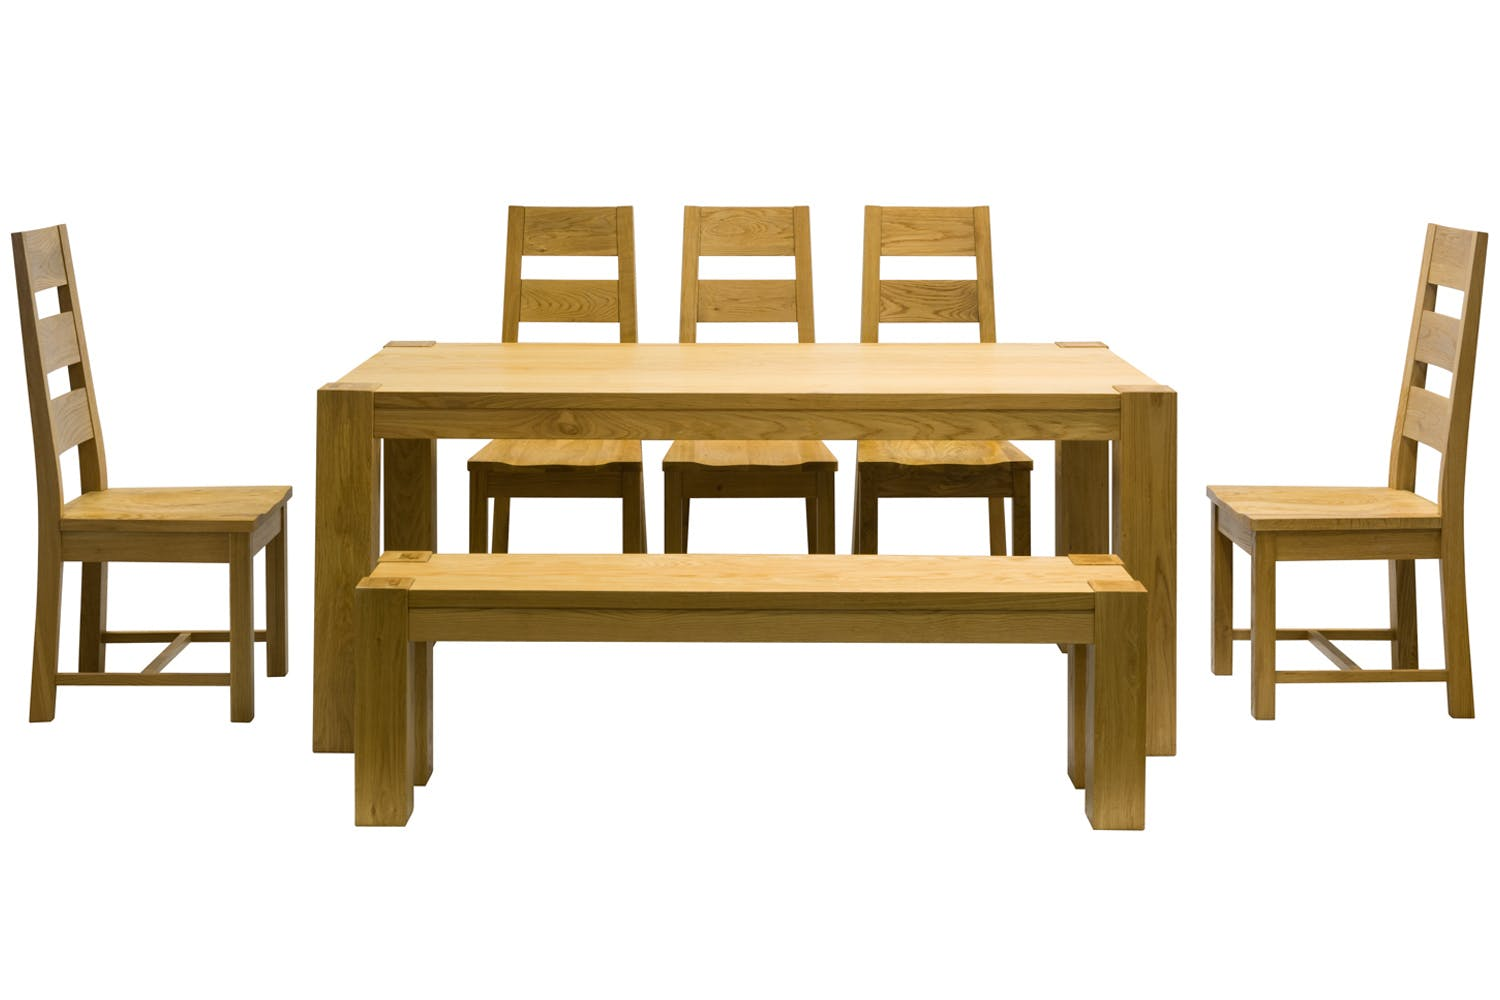 Quercus 7-Piece Dining Set | Quercus Chair & Bench